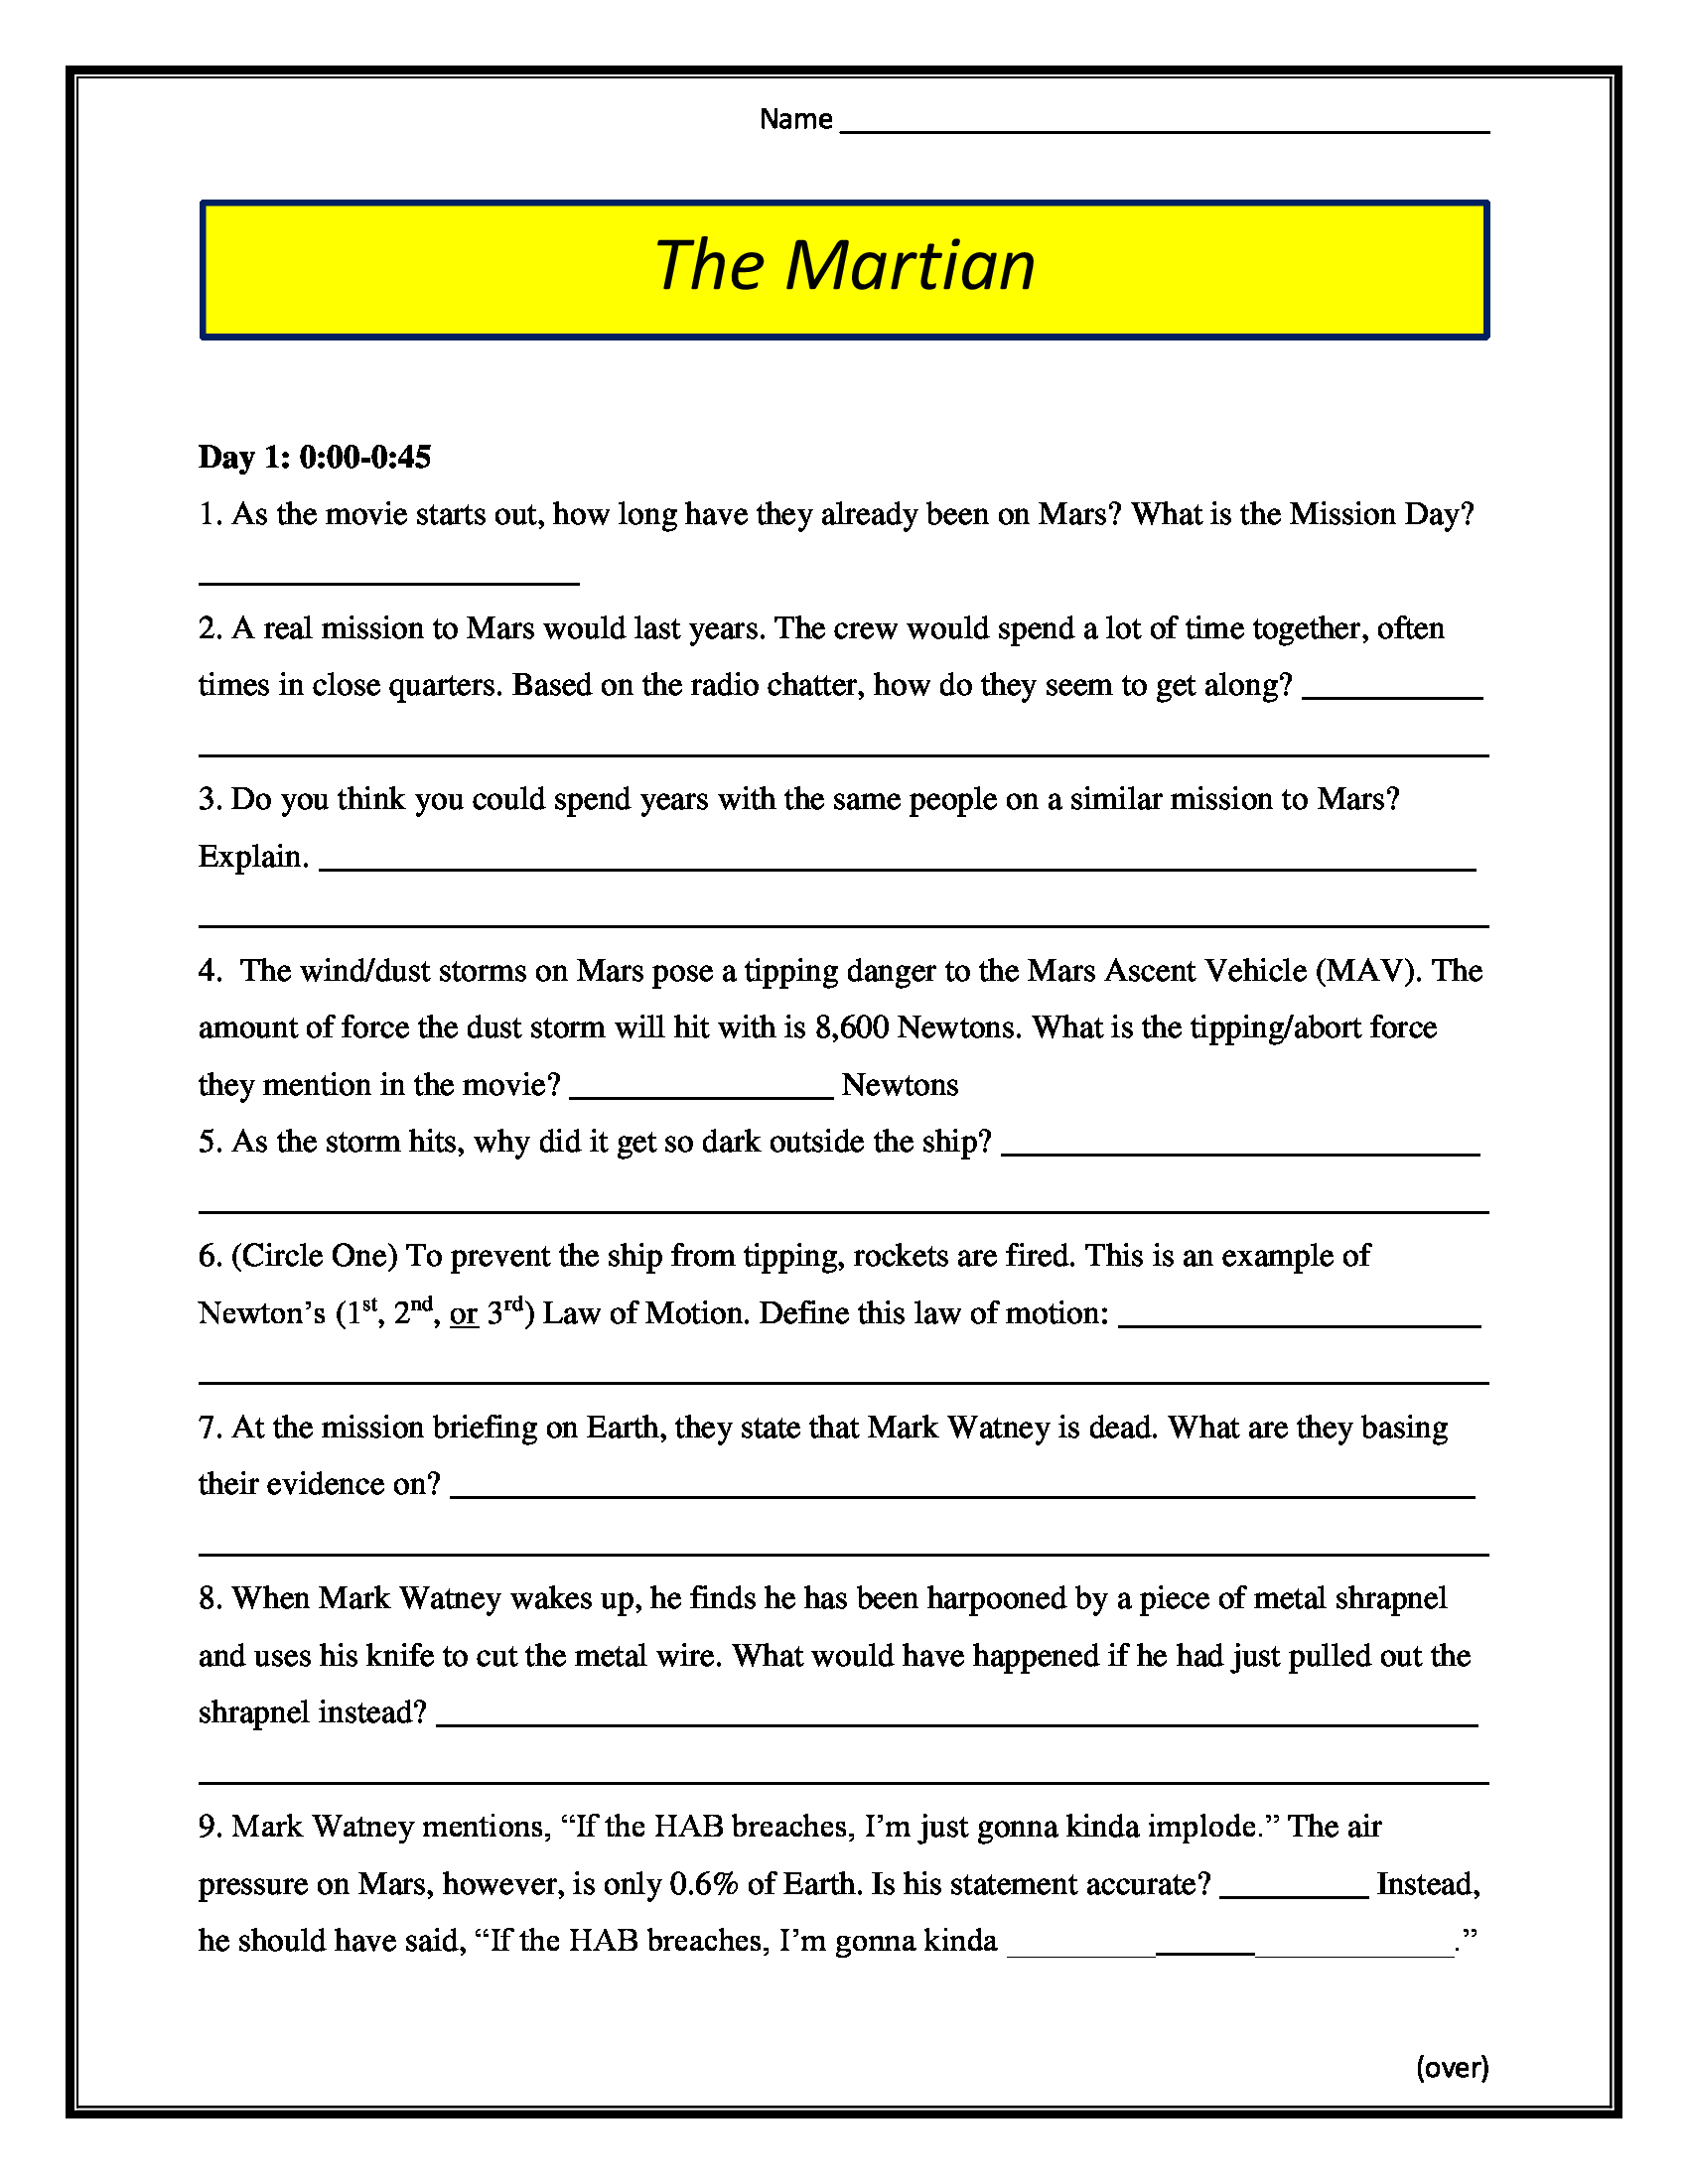 The Martian Movie Worksheet Pg 13